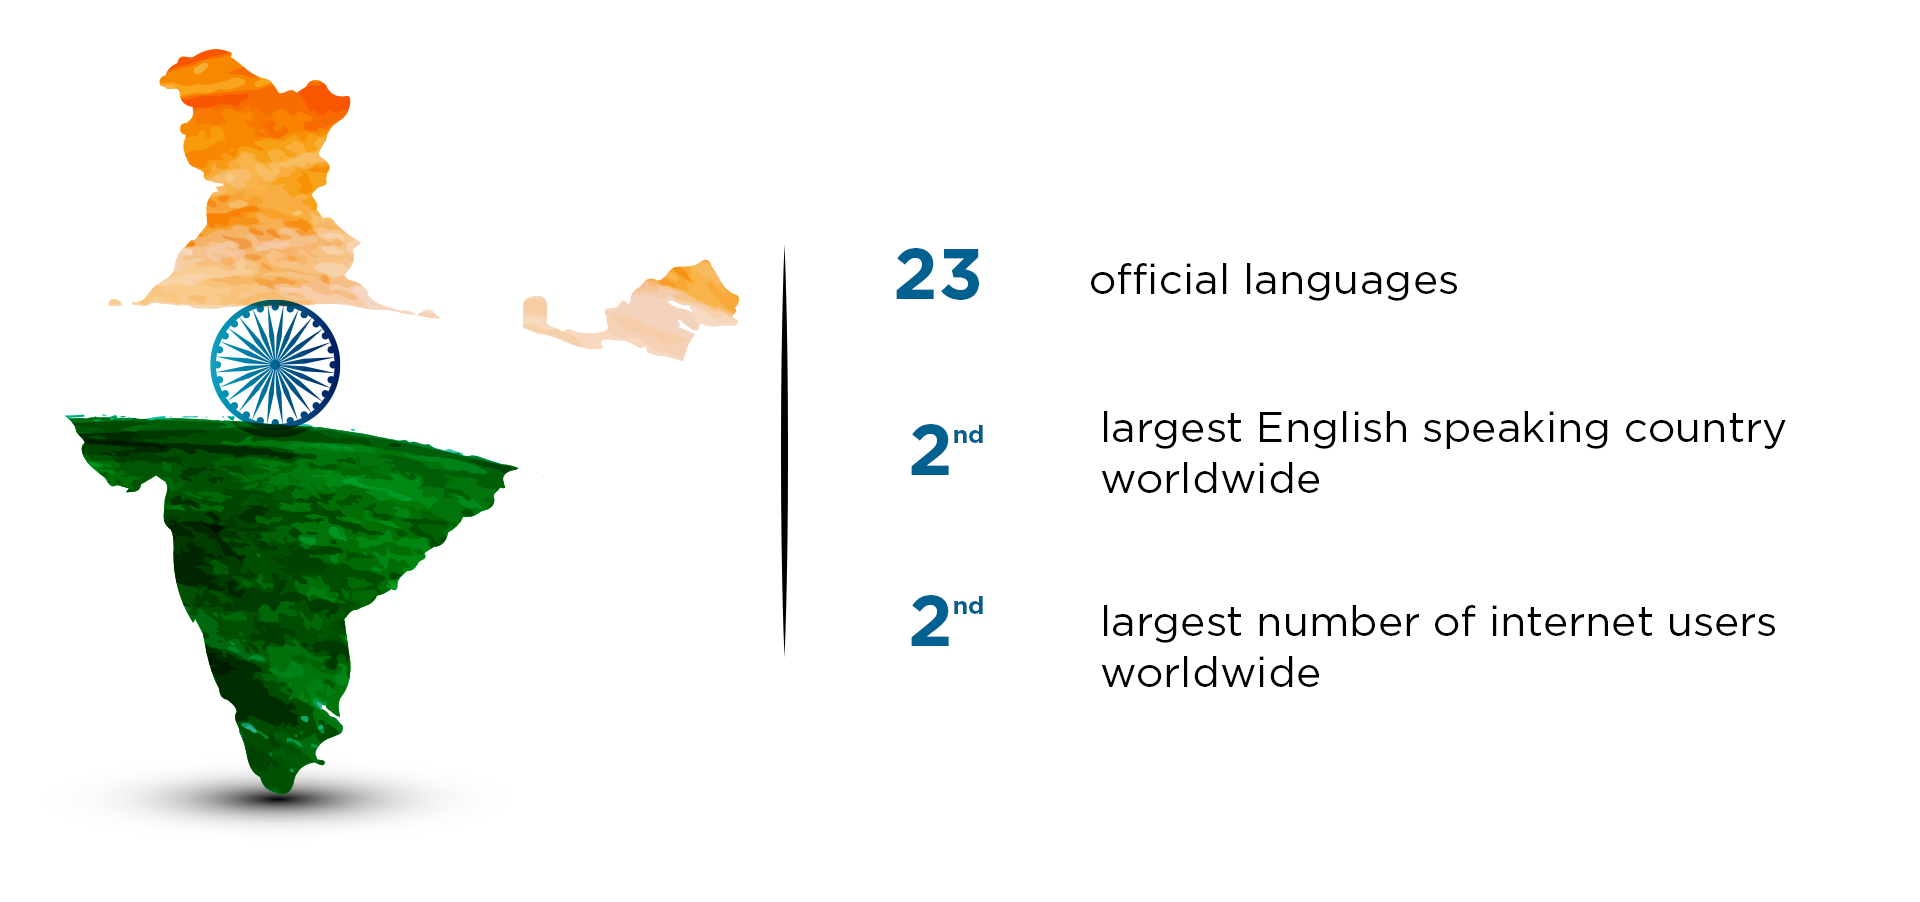 Stats about the Indian language which explain the need for Indian language translations